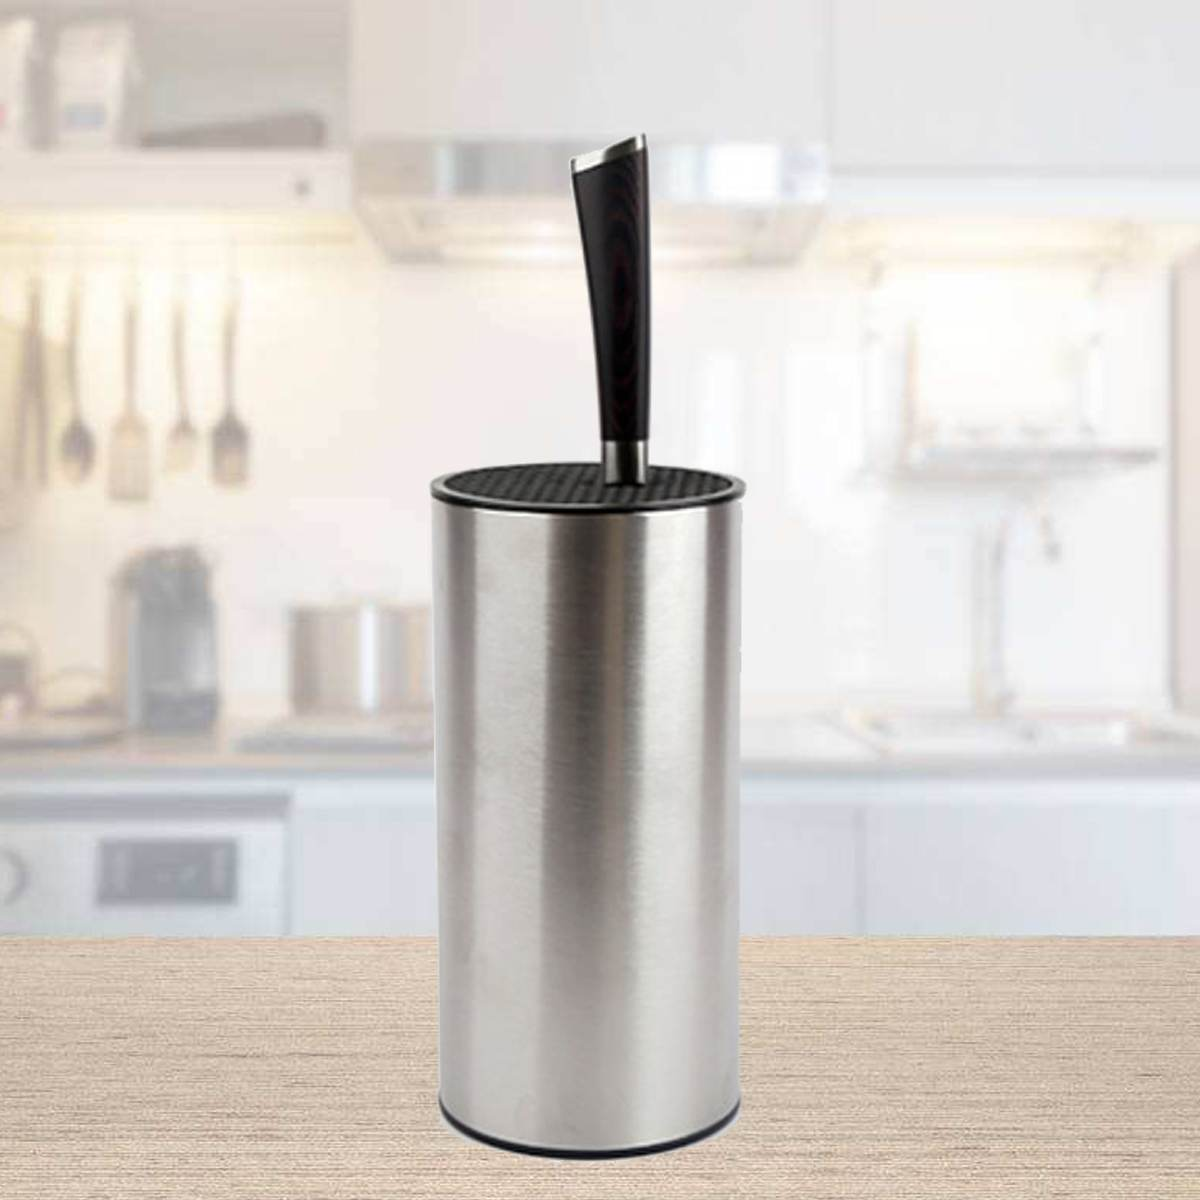 Freedom Kitchen Knife Stand Stainless Steel ABS Knife Block Knife Holder Fashion Outlook Kitchen Knive Partner Kitchenware